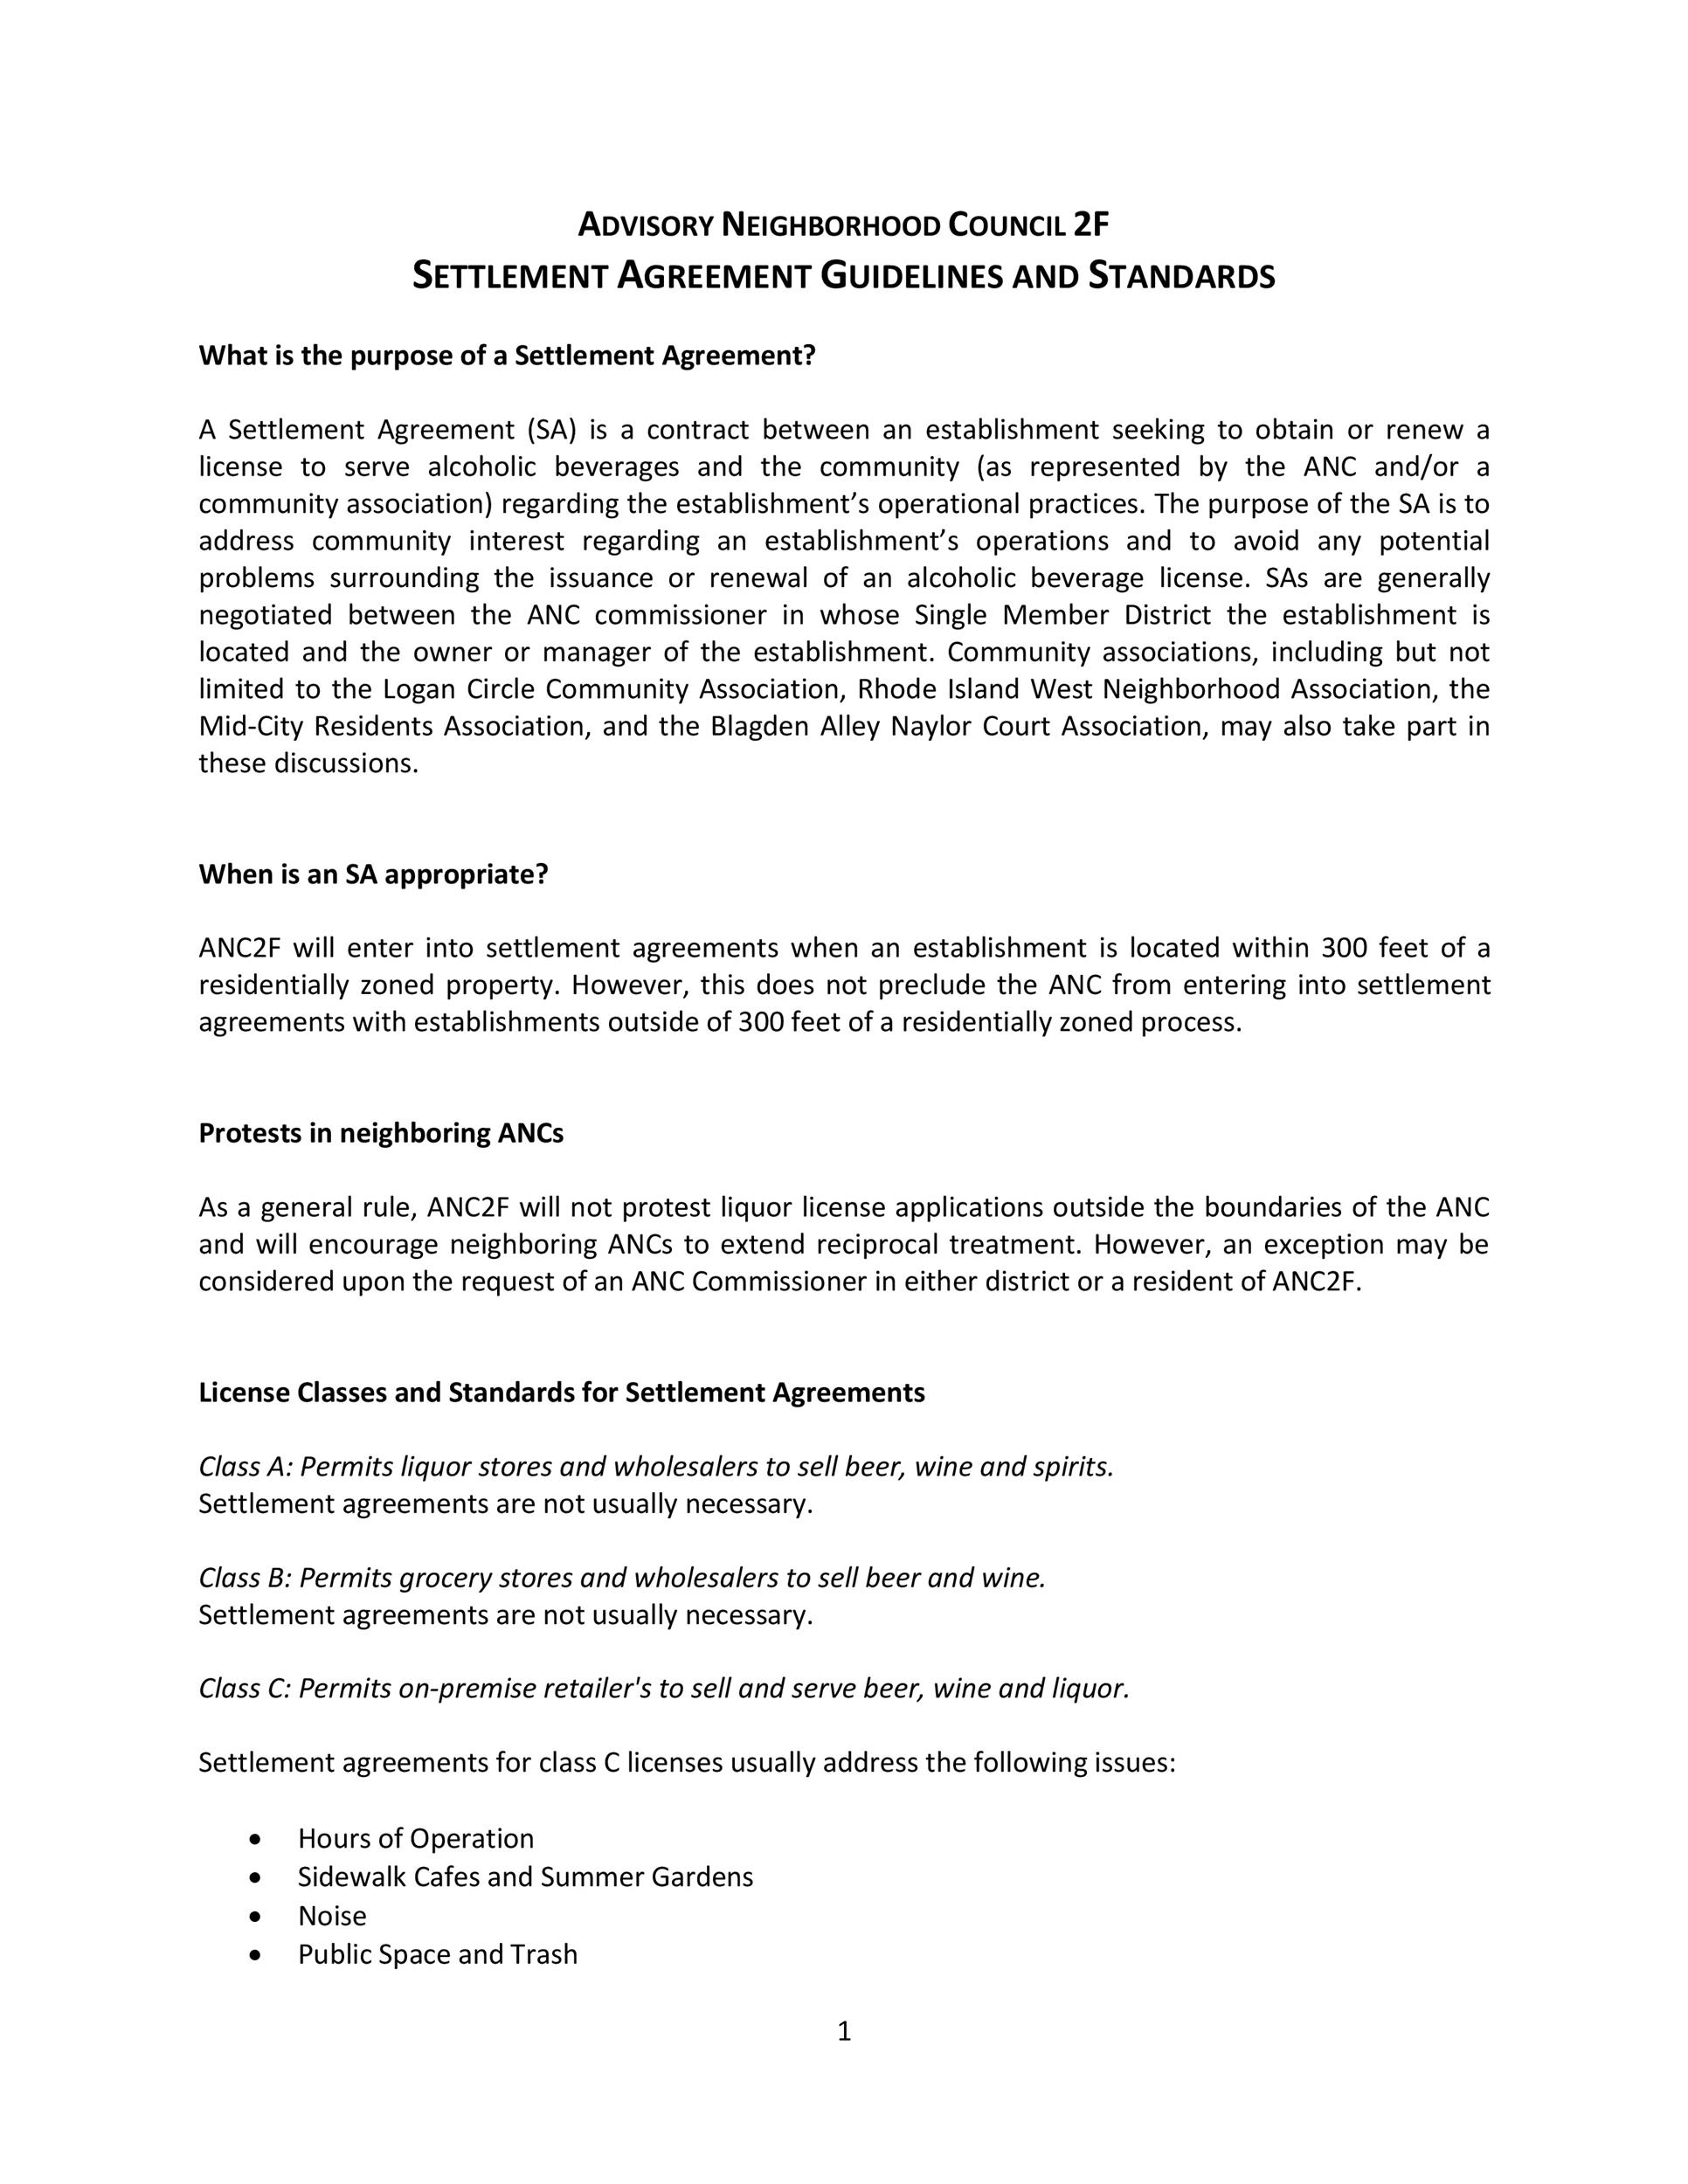 Free settlement agreement 17